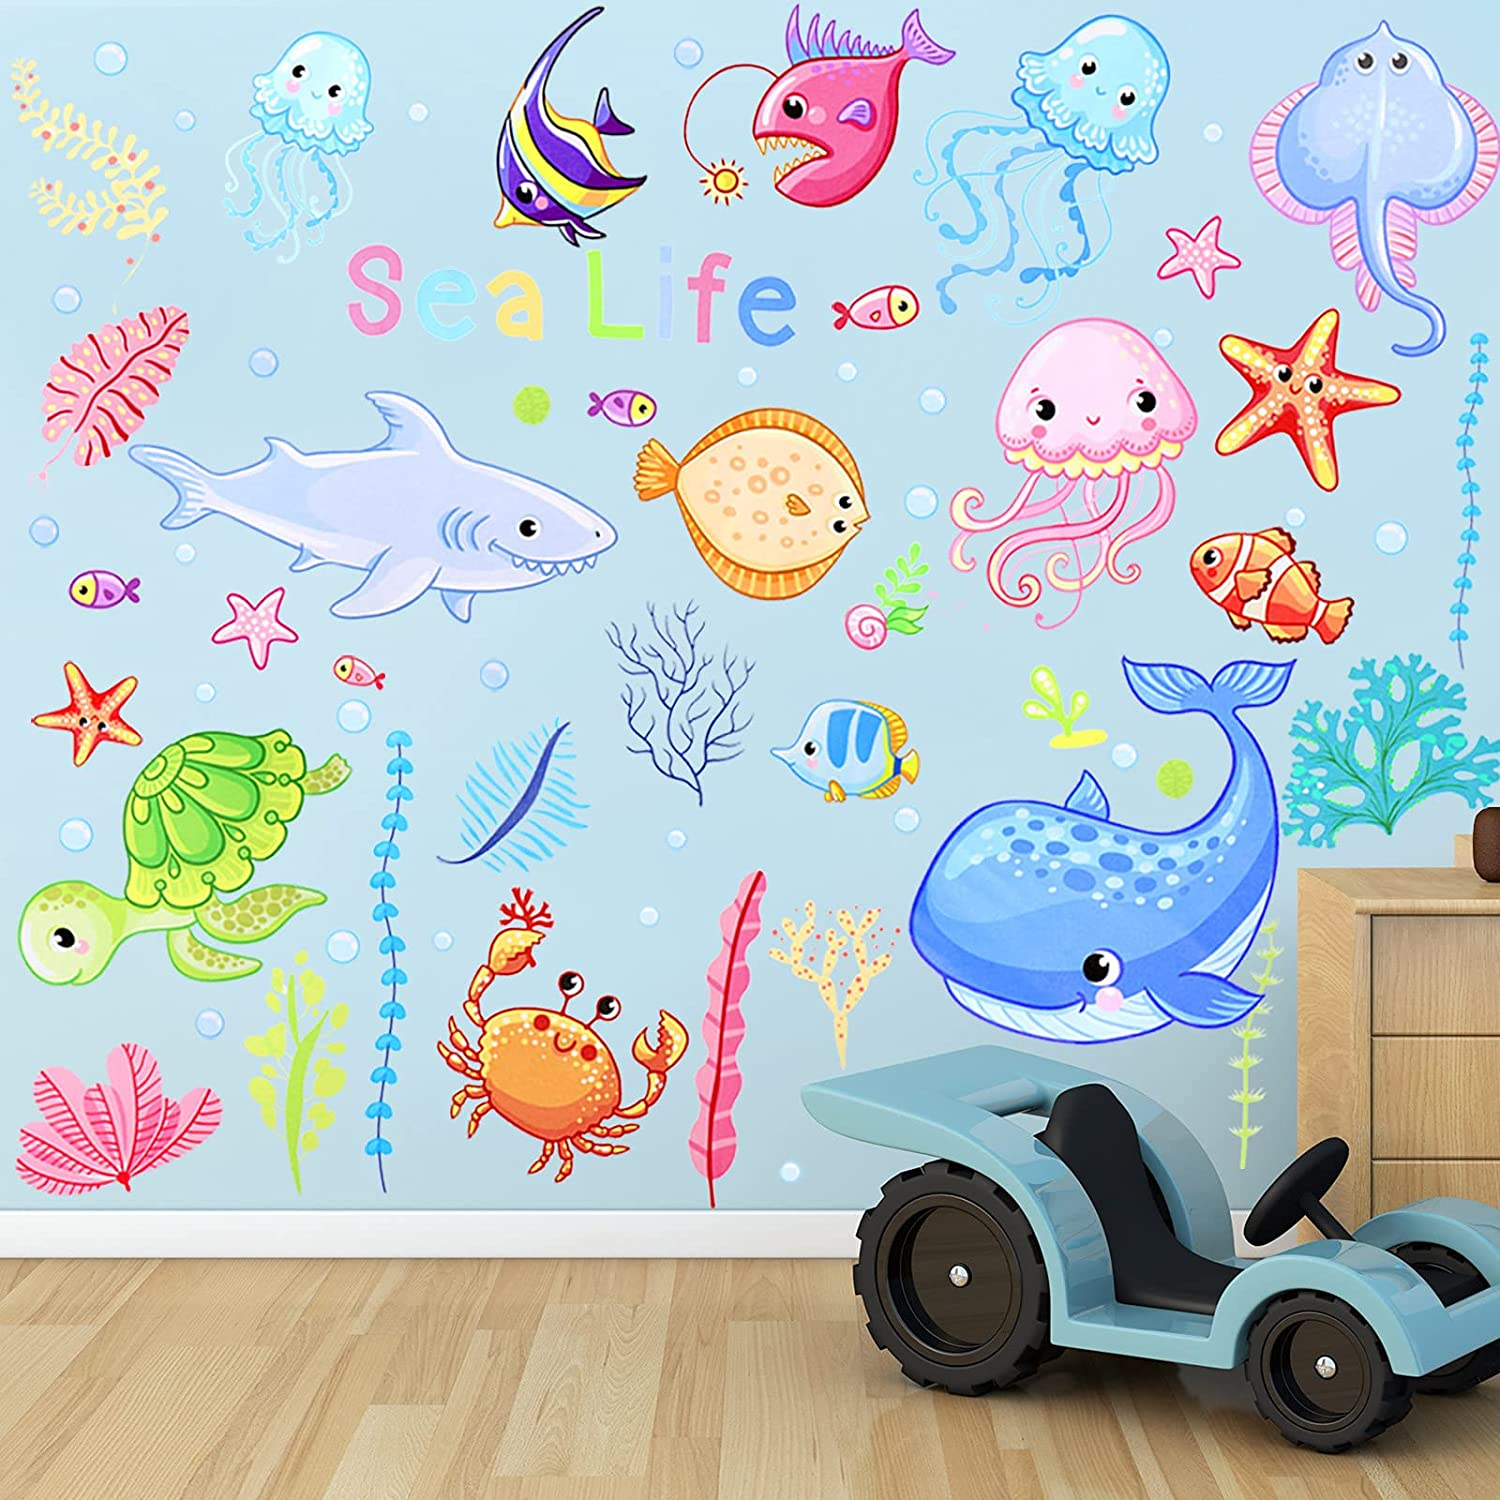 Outus 4 Sheets Colorful Ocean Life Wall Stickers Sea Creatures Wall Stickers Under The Sea Fish Jellyfish Removable Wall Decor for Kids Baby Bathroom Bedroom Living Room